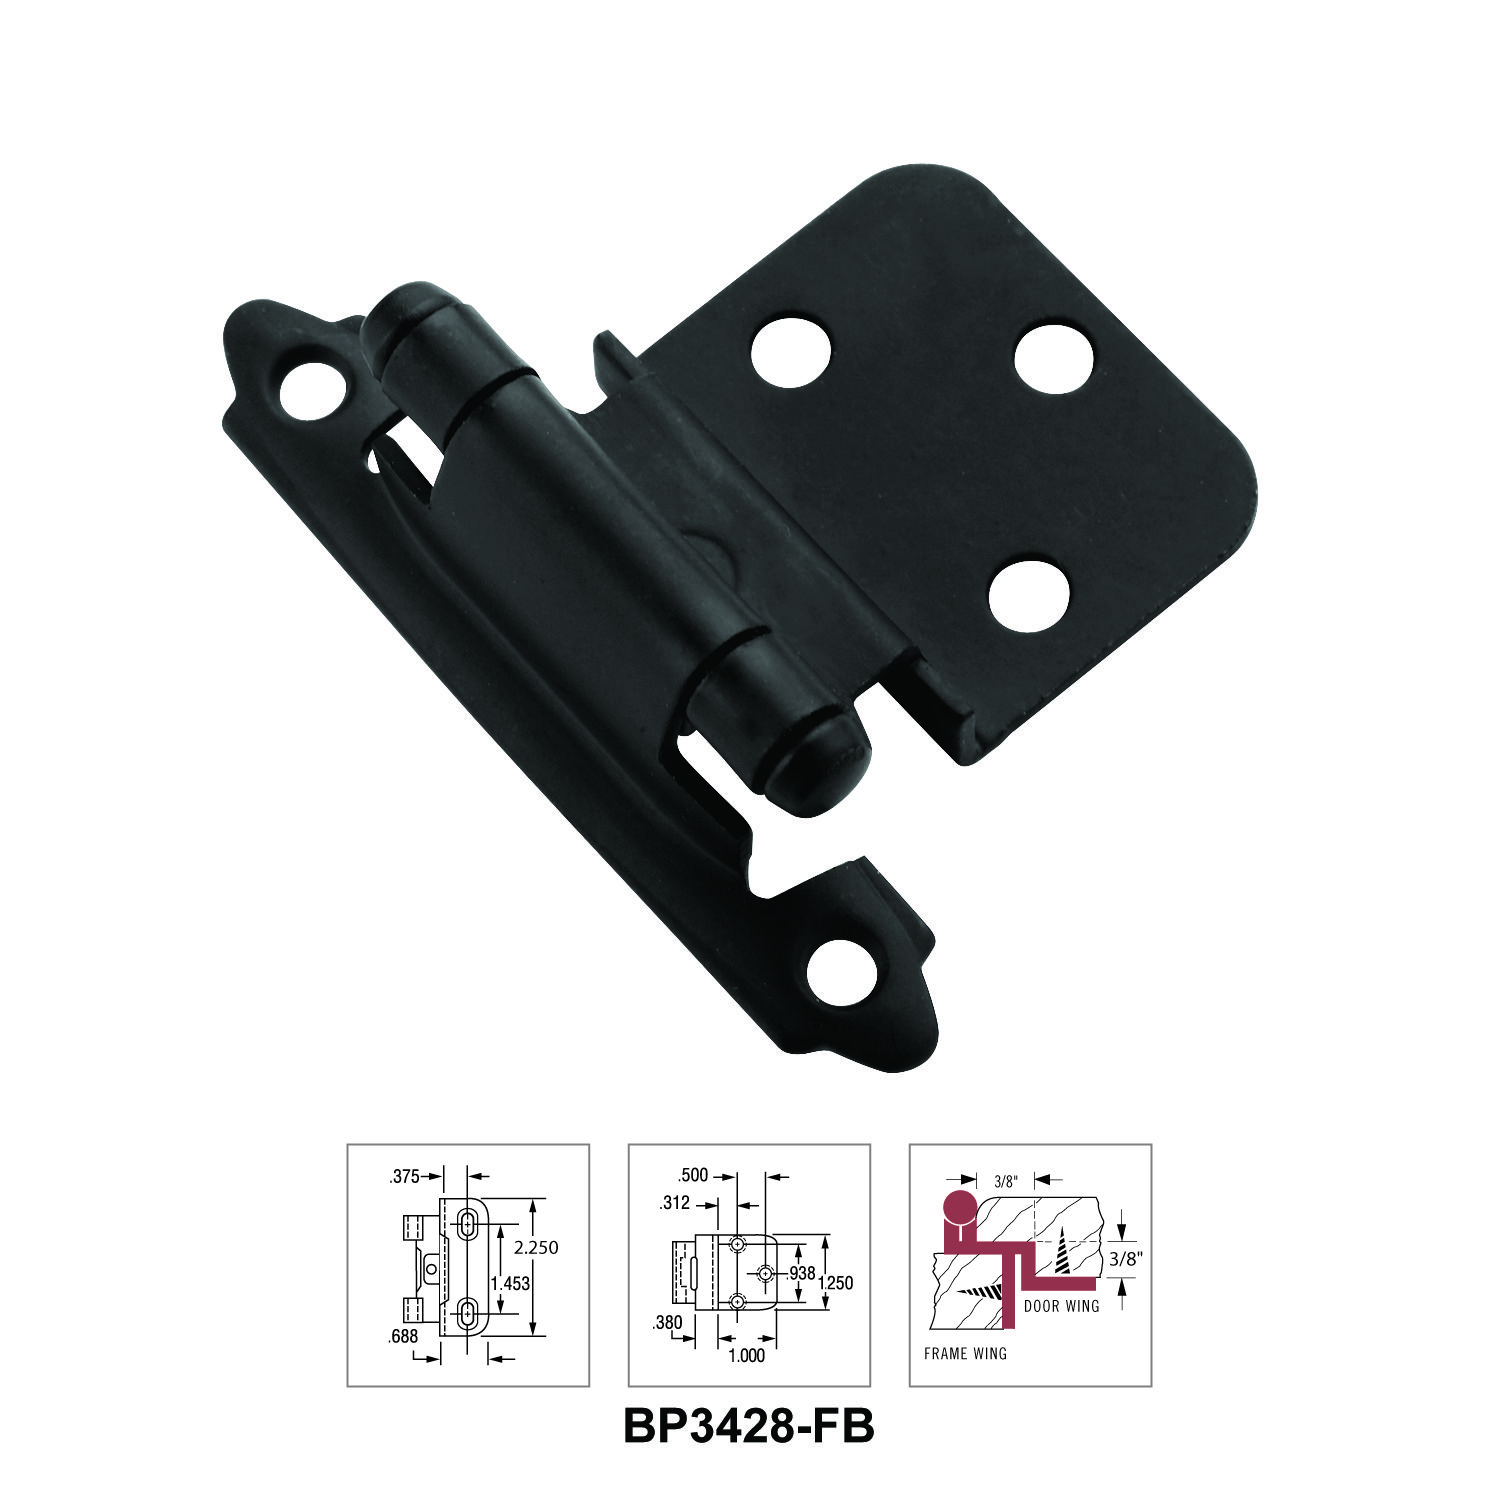 Amerock S Bp3428 Fb 3 8 Inch Inset Face Frame Mount Self Closing Cabinet Hinge In Flat Black Features Traditional Semi Con Amerock Compression Springs Hinges